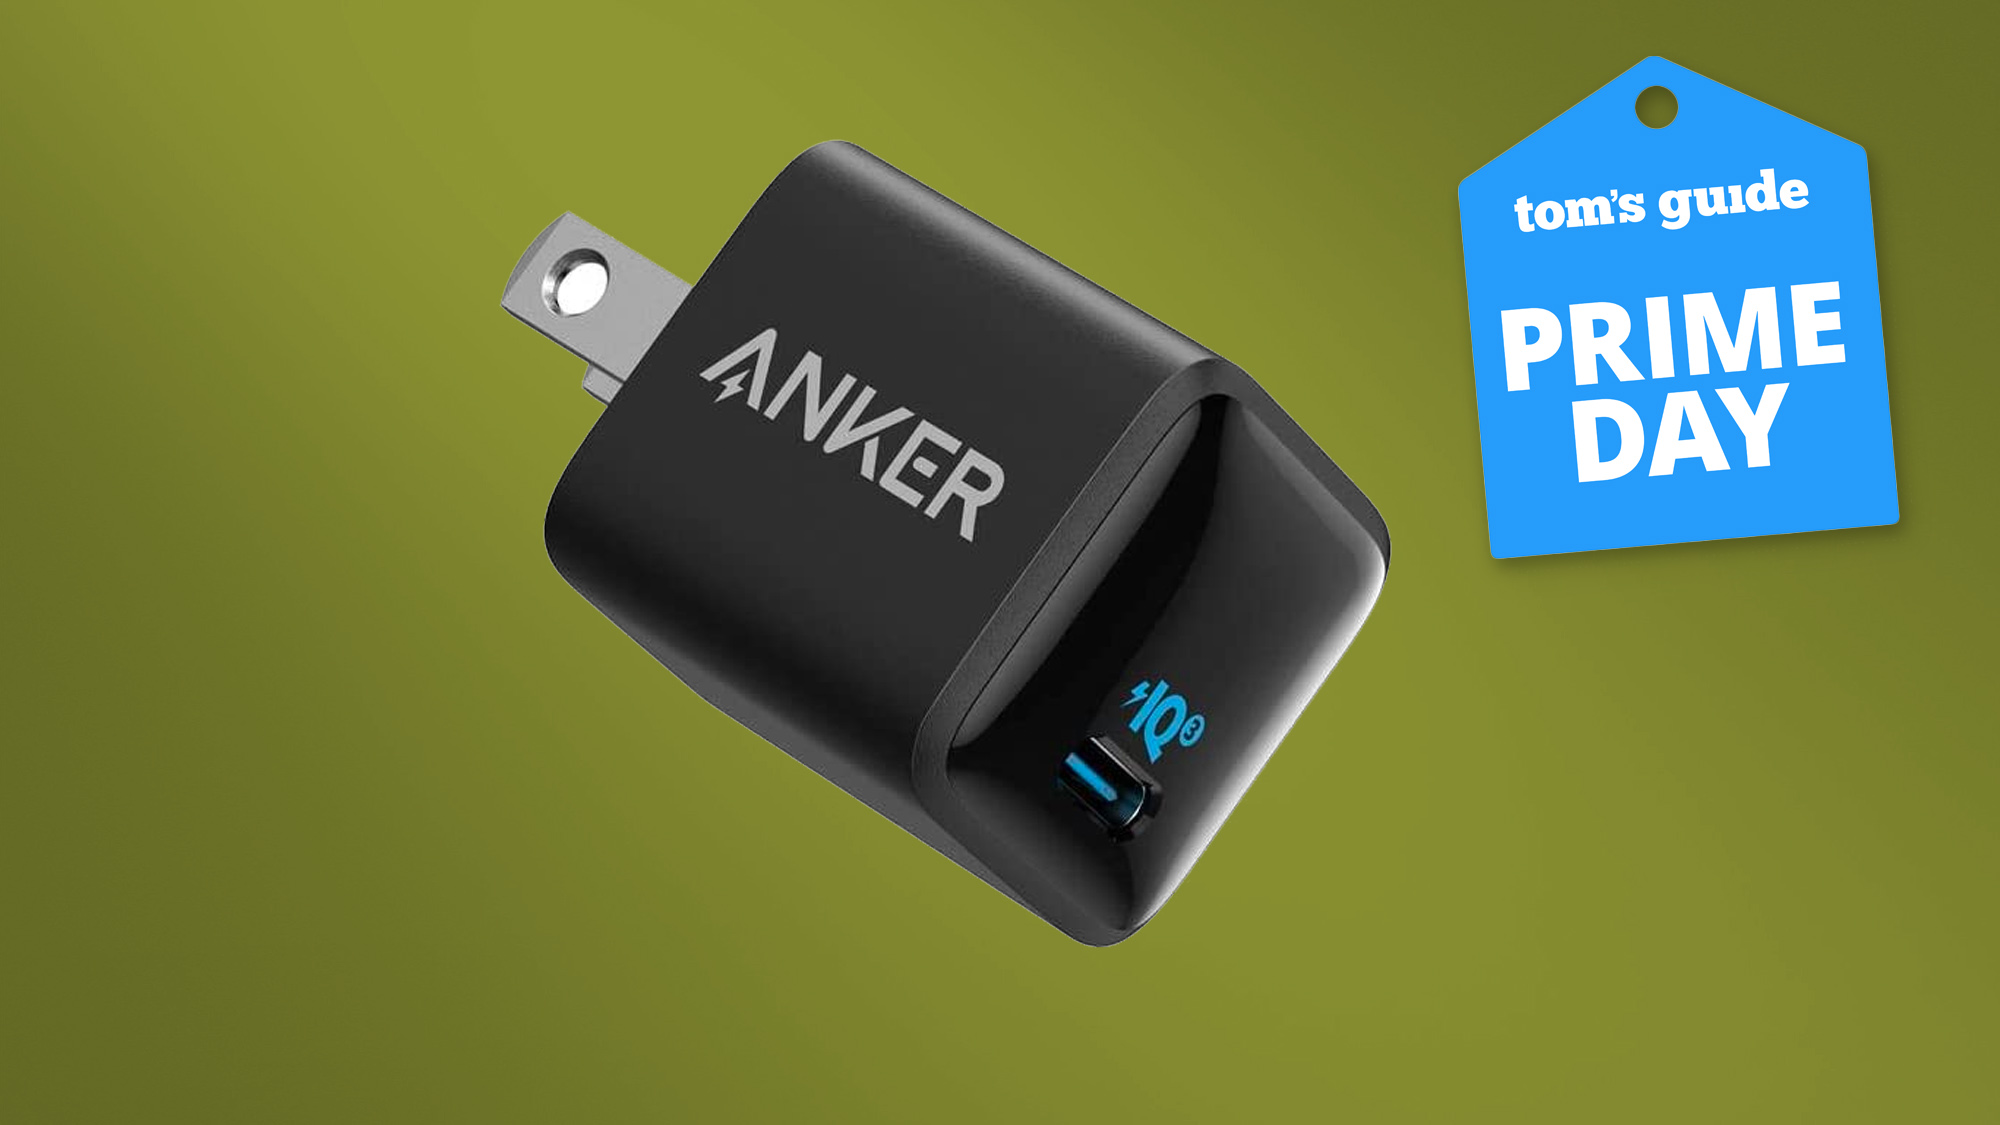 Anker Nano Charger Prime Day Deal